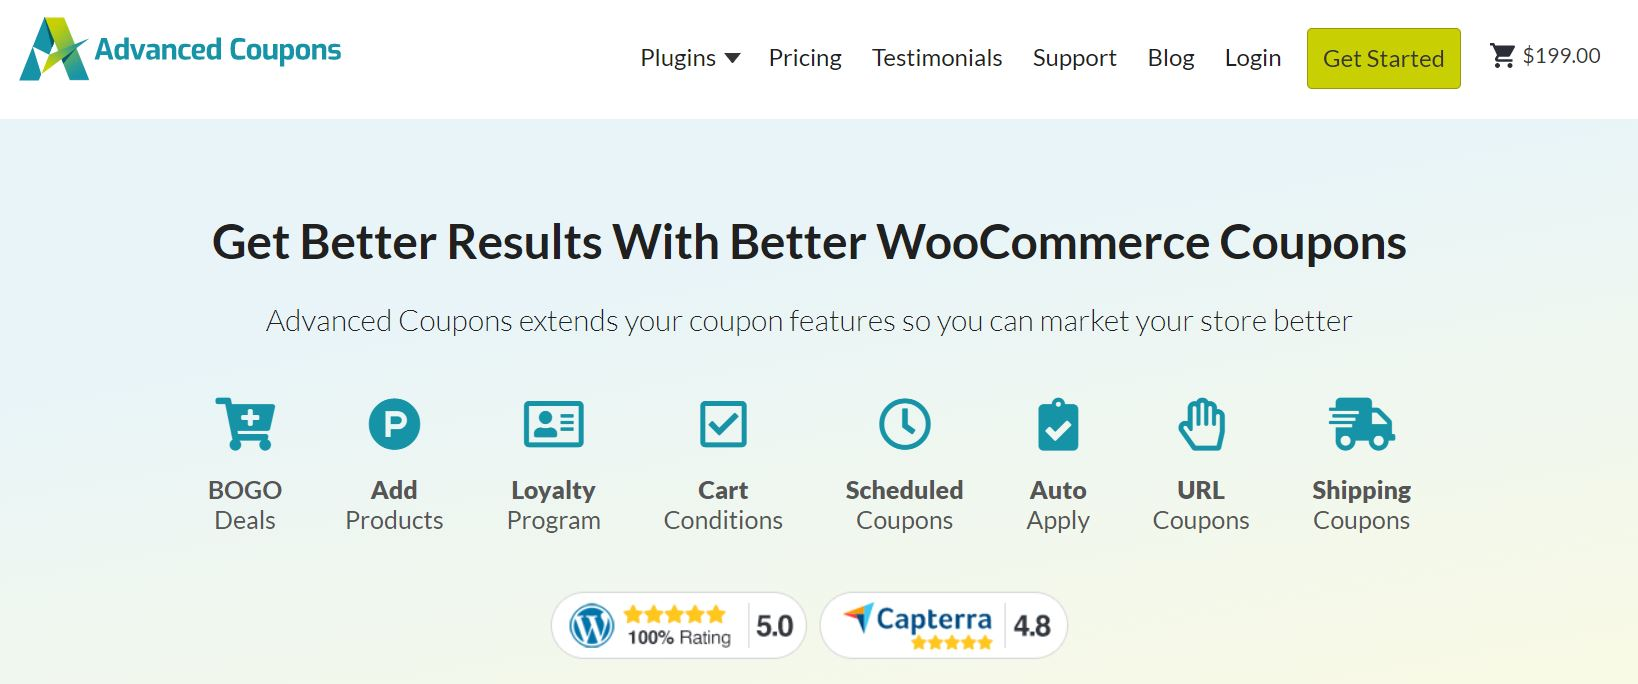 Advanced Coupons is one of the best WooCommerce marketing plugins for your site.